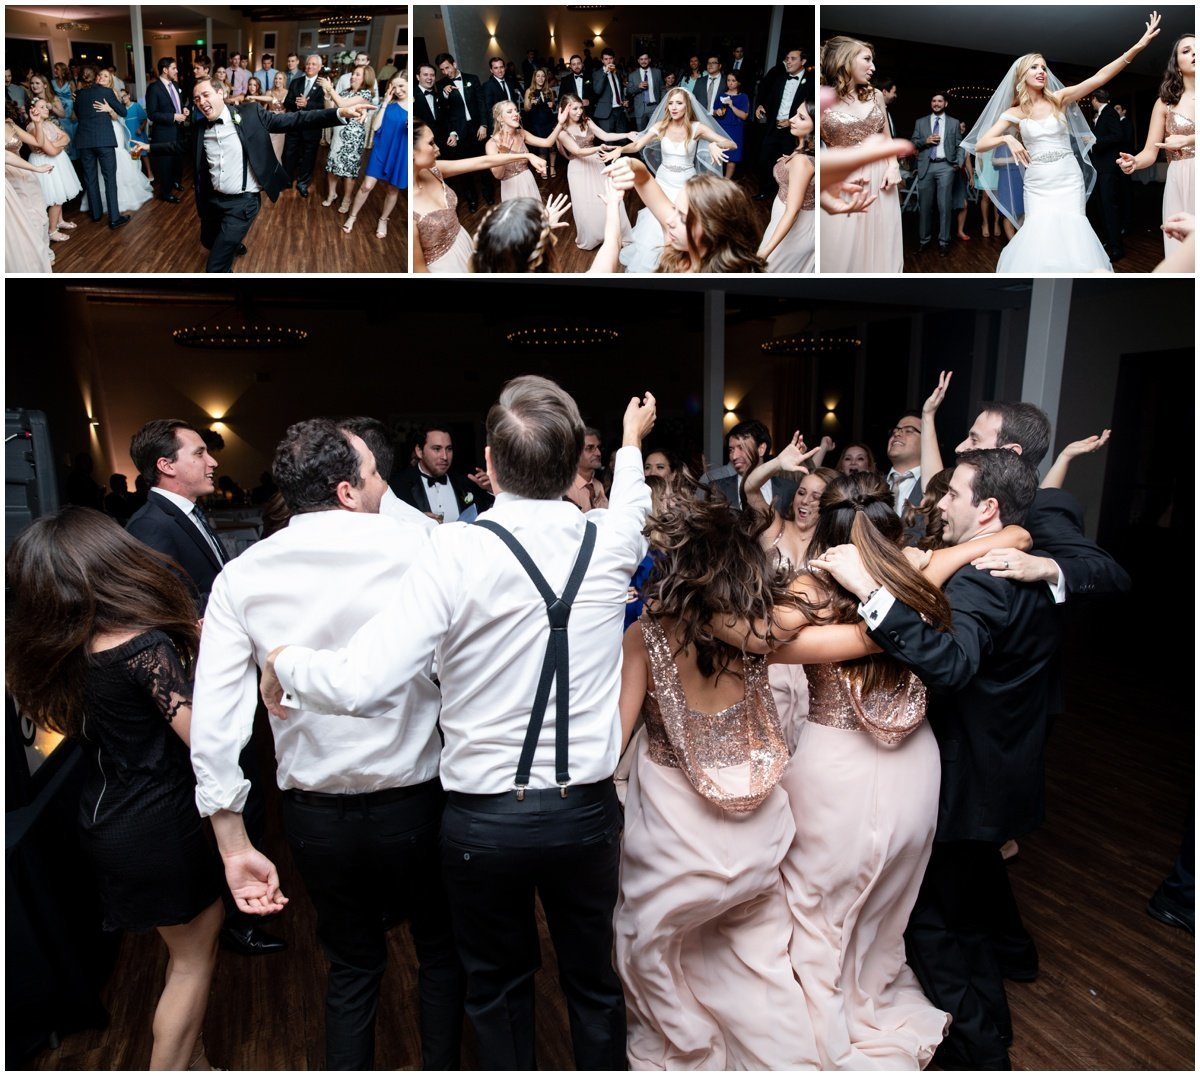 austin wedding photographer vintage villas reception dancing 4209 Eck Ln, Austin, TX 78734